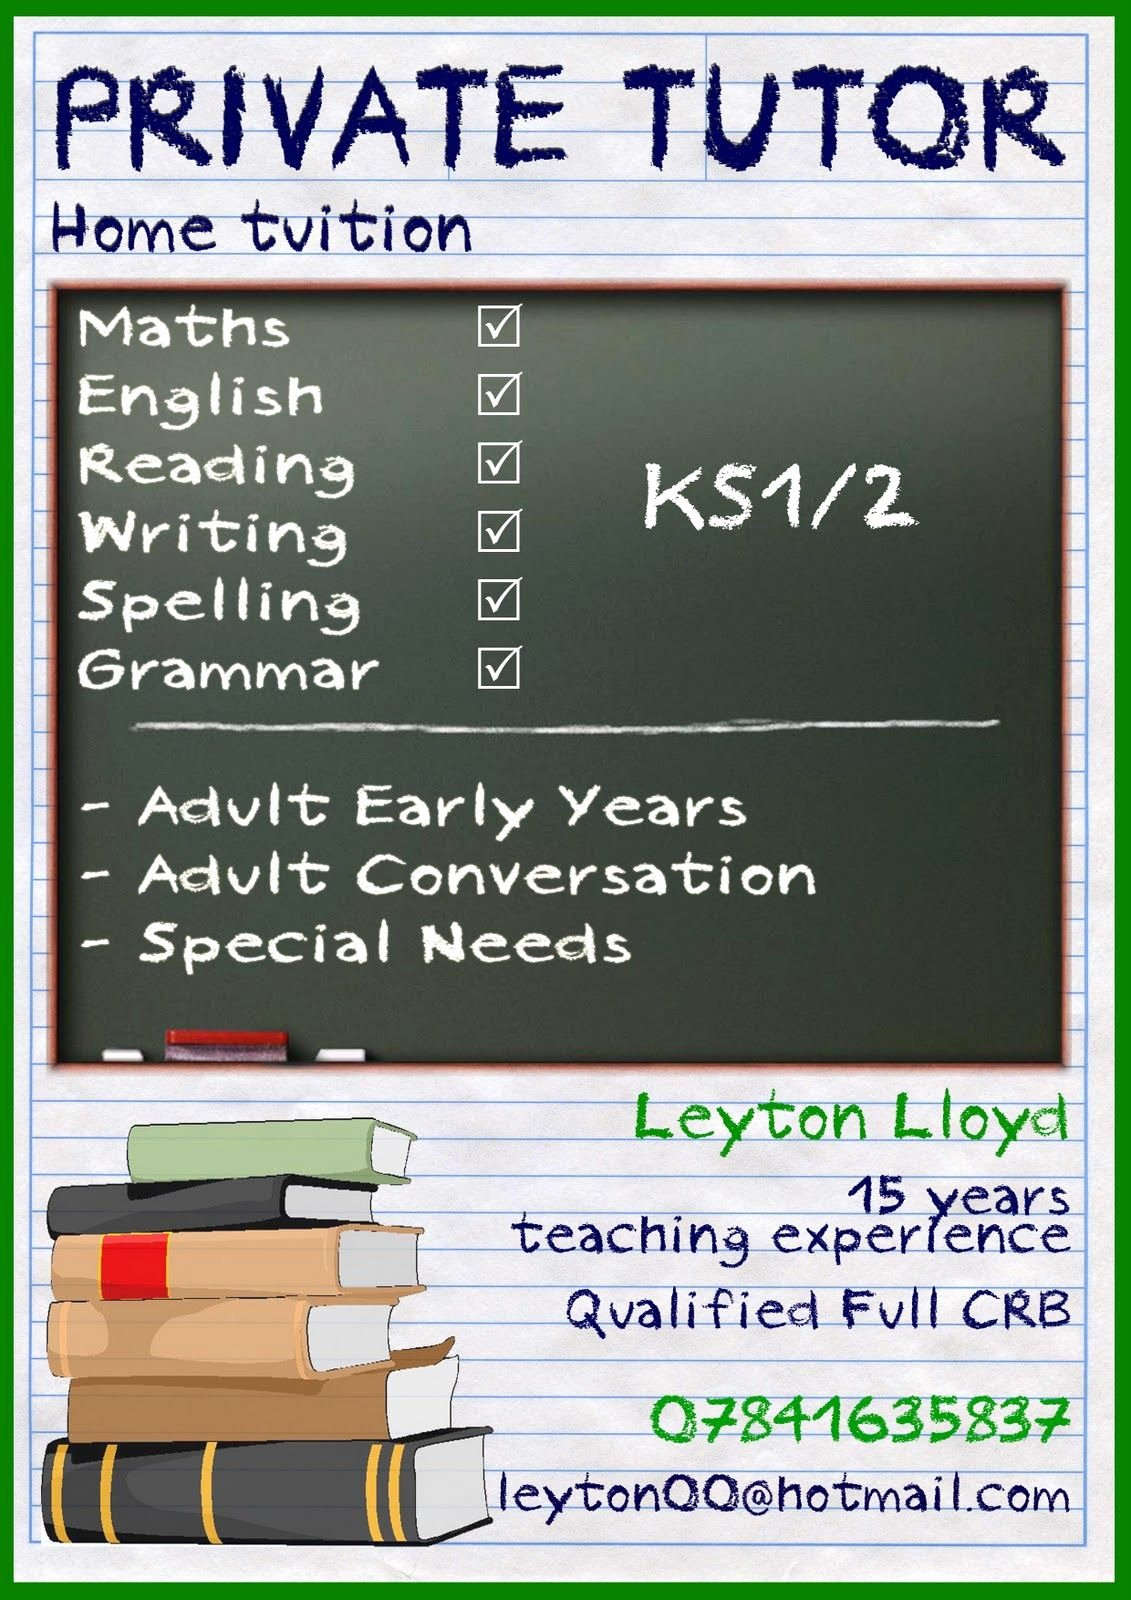 Tutoring Flyers Template Free Unique Image Result for Tutor Leaflet Tutor